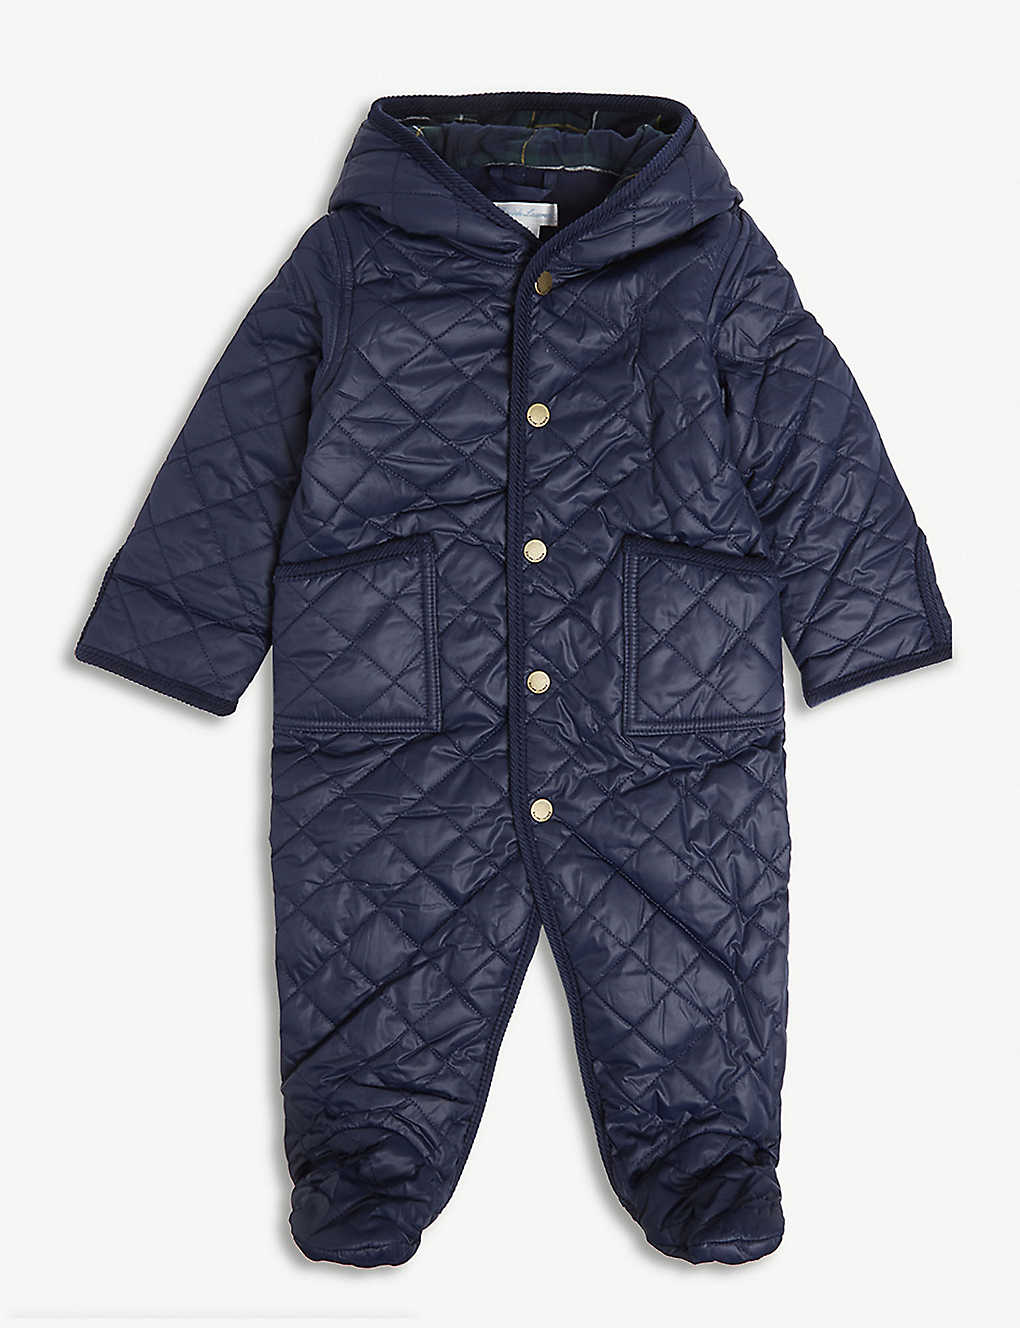 36d680aed RALPH LAUREN - Hooded quilted snowsuit 3-9 months